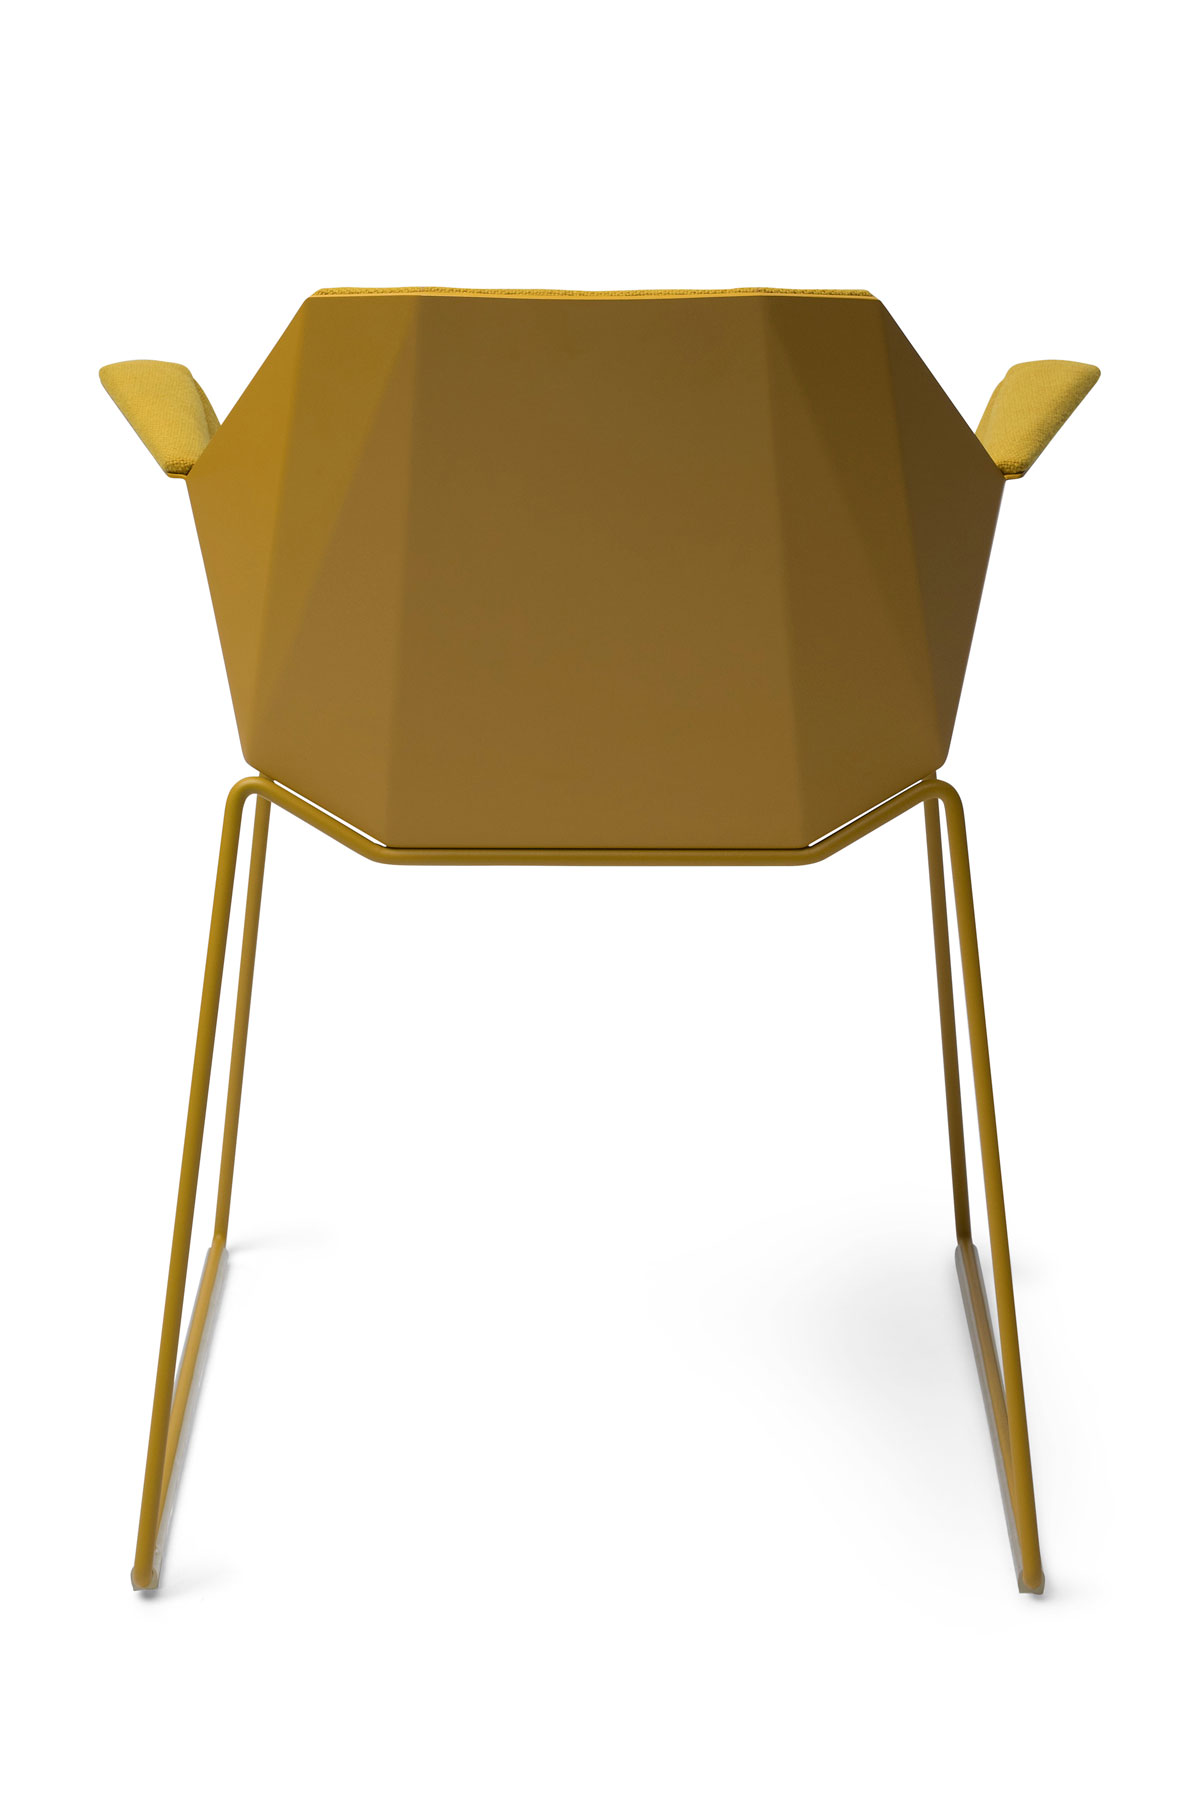 Alumni-Sledge-ochreous-yellow-upholstered_back.jpg